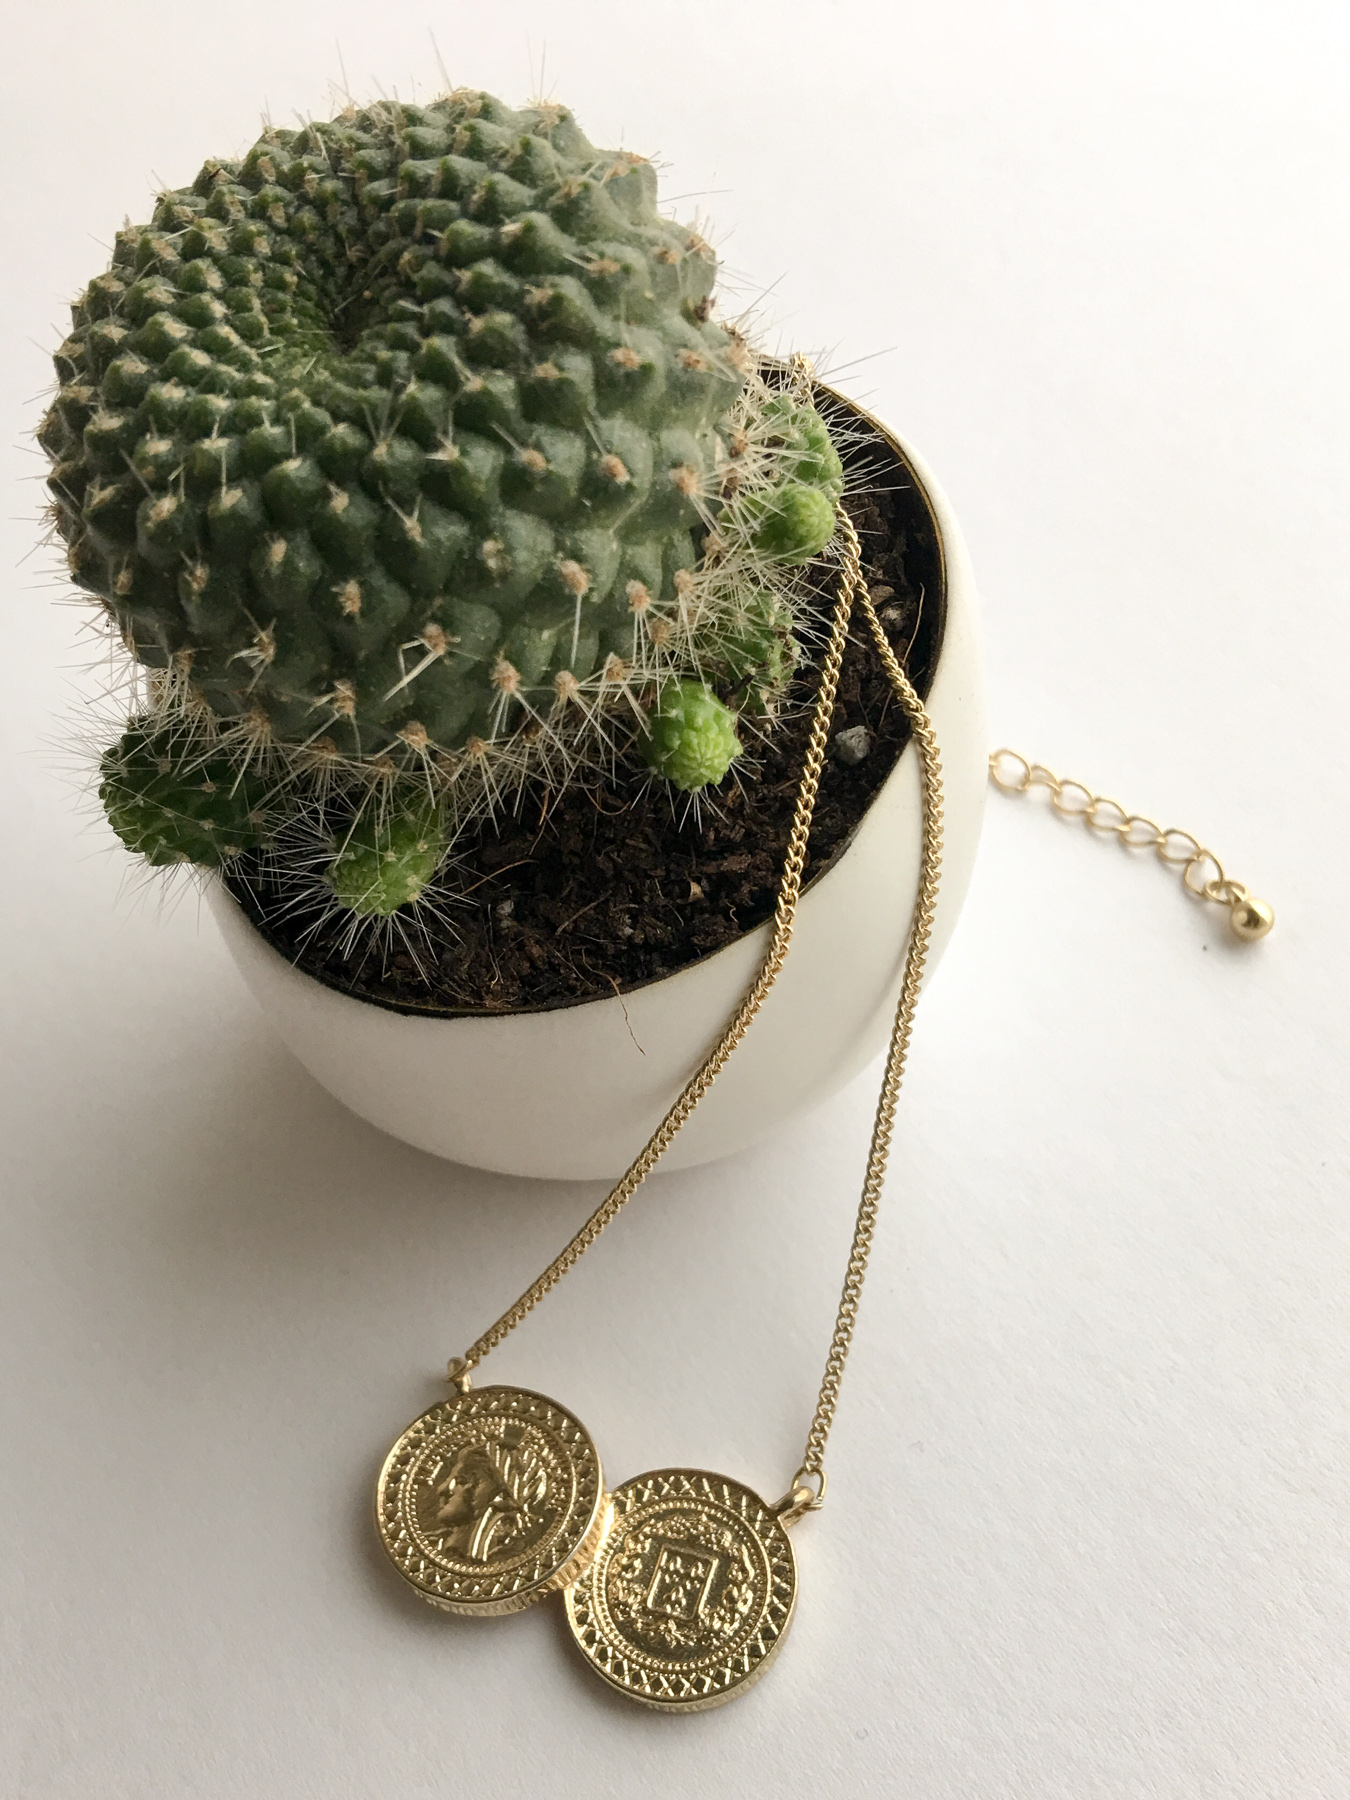 Kate-Spade-Necklace-and-Cactus.jpg